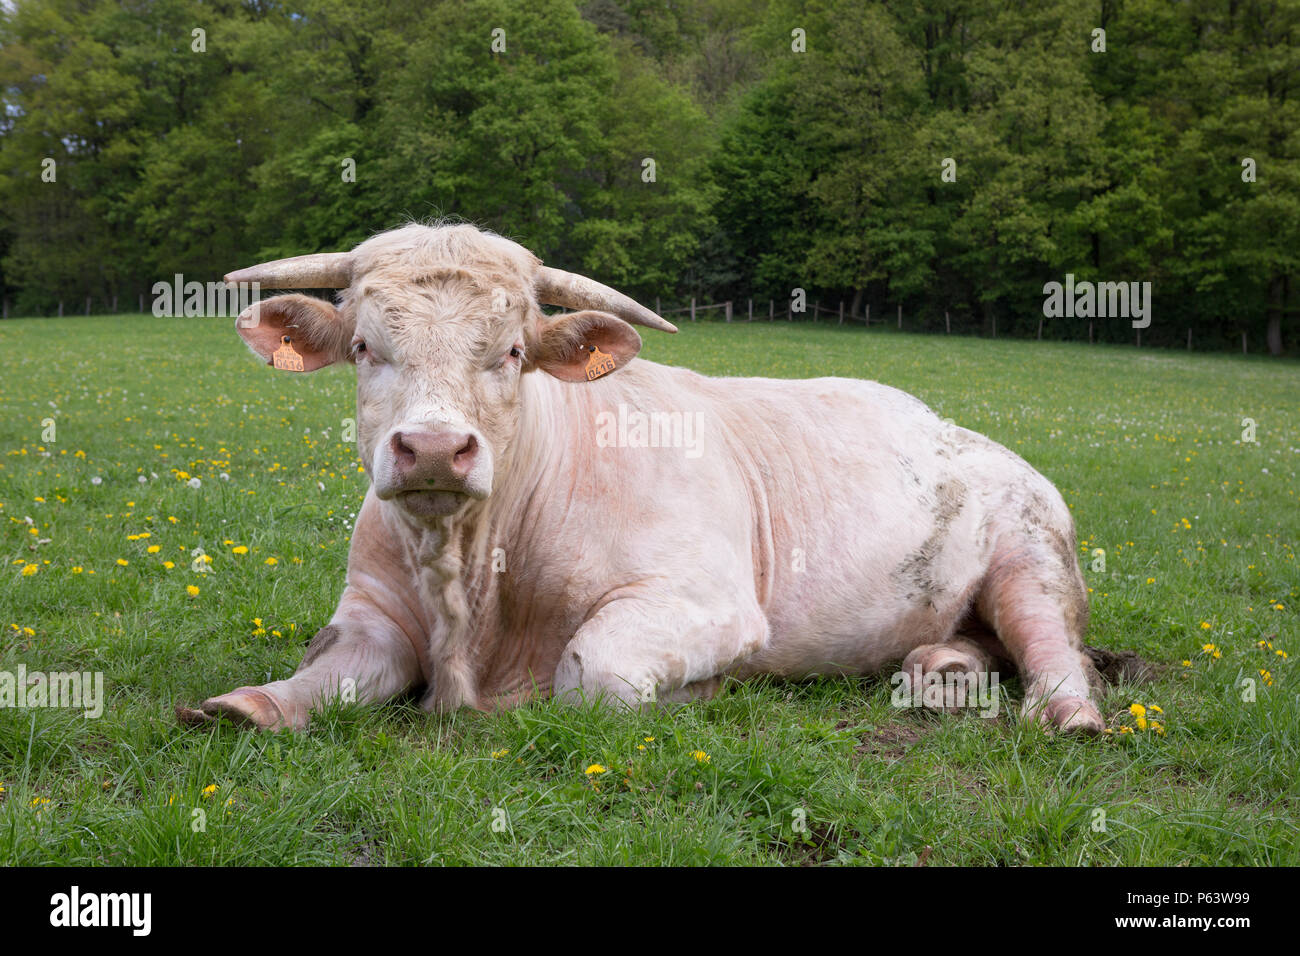 A young Charolais bull ruminating in a green pasture. - Stock Image